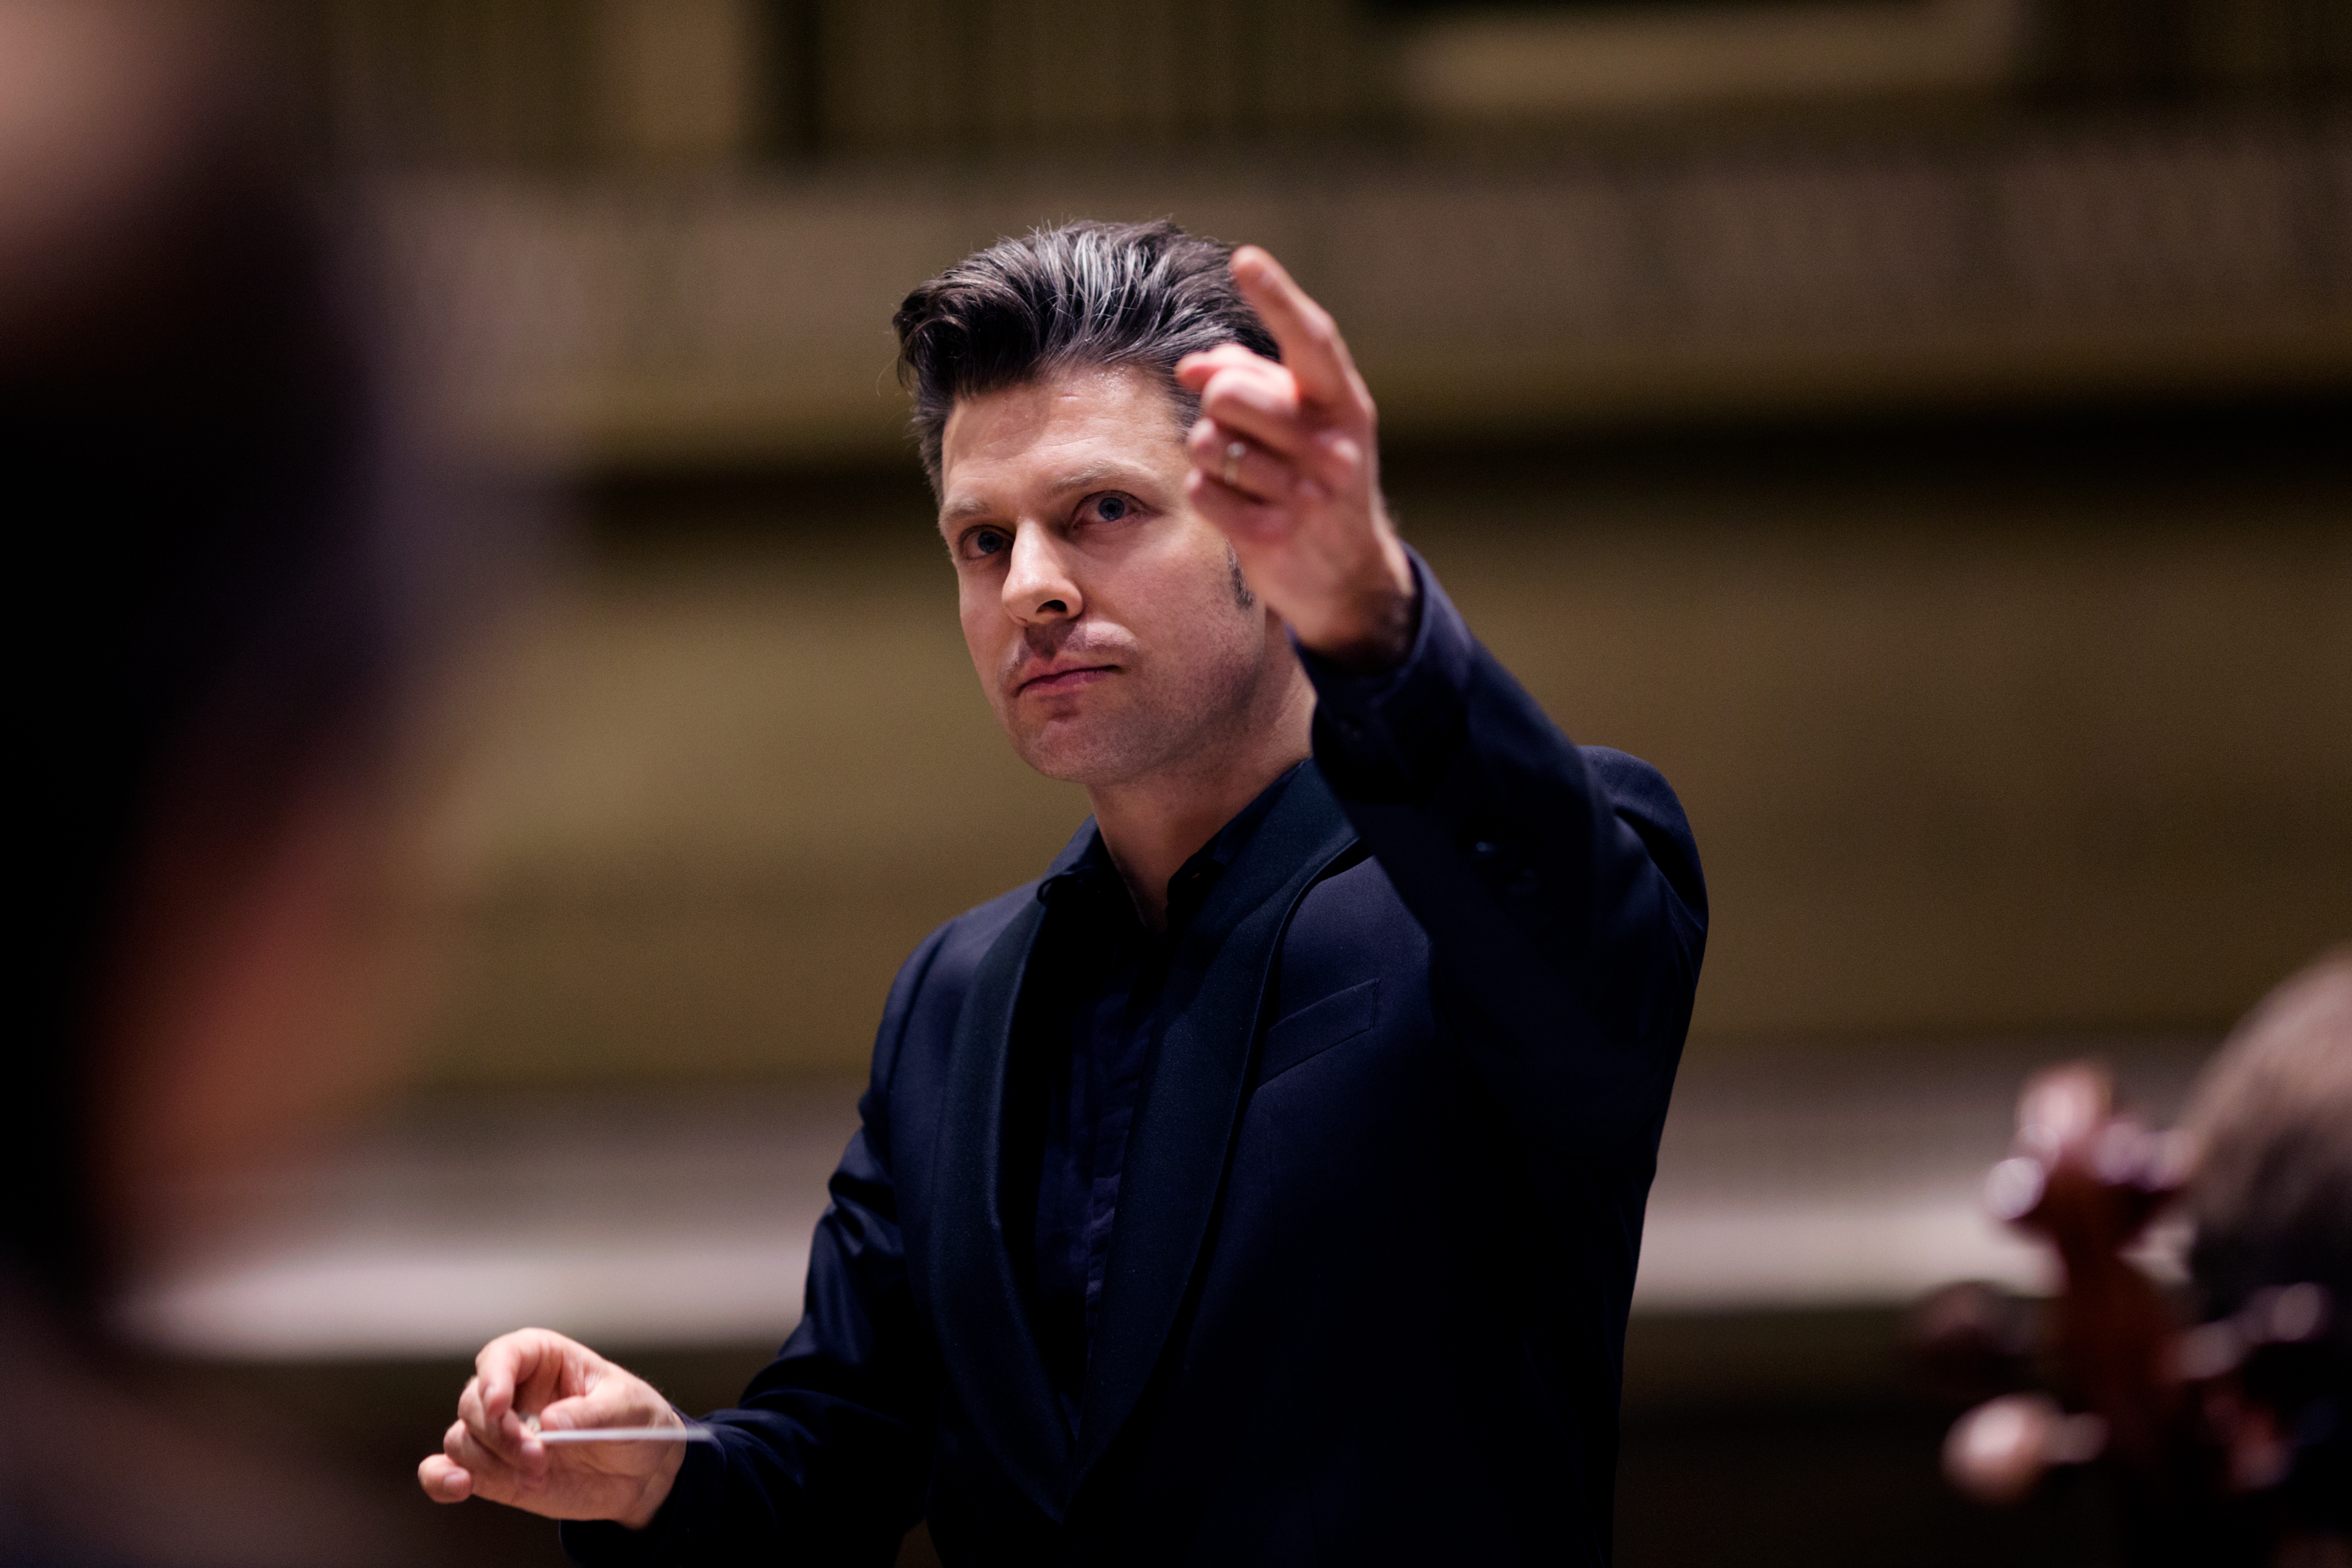 Joseph Bastian debuts with the Bavarian Youth Orchestra